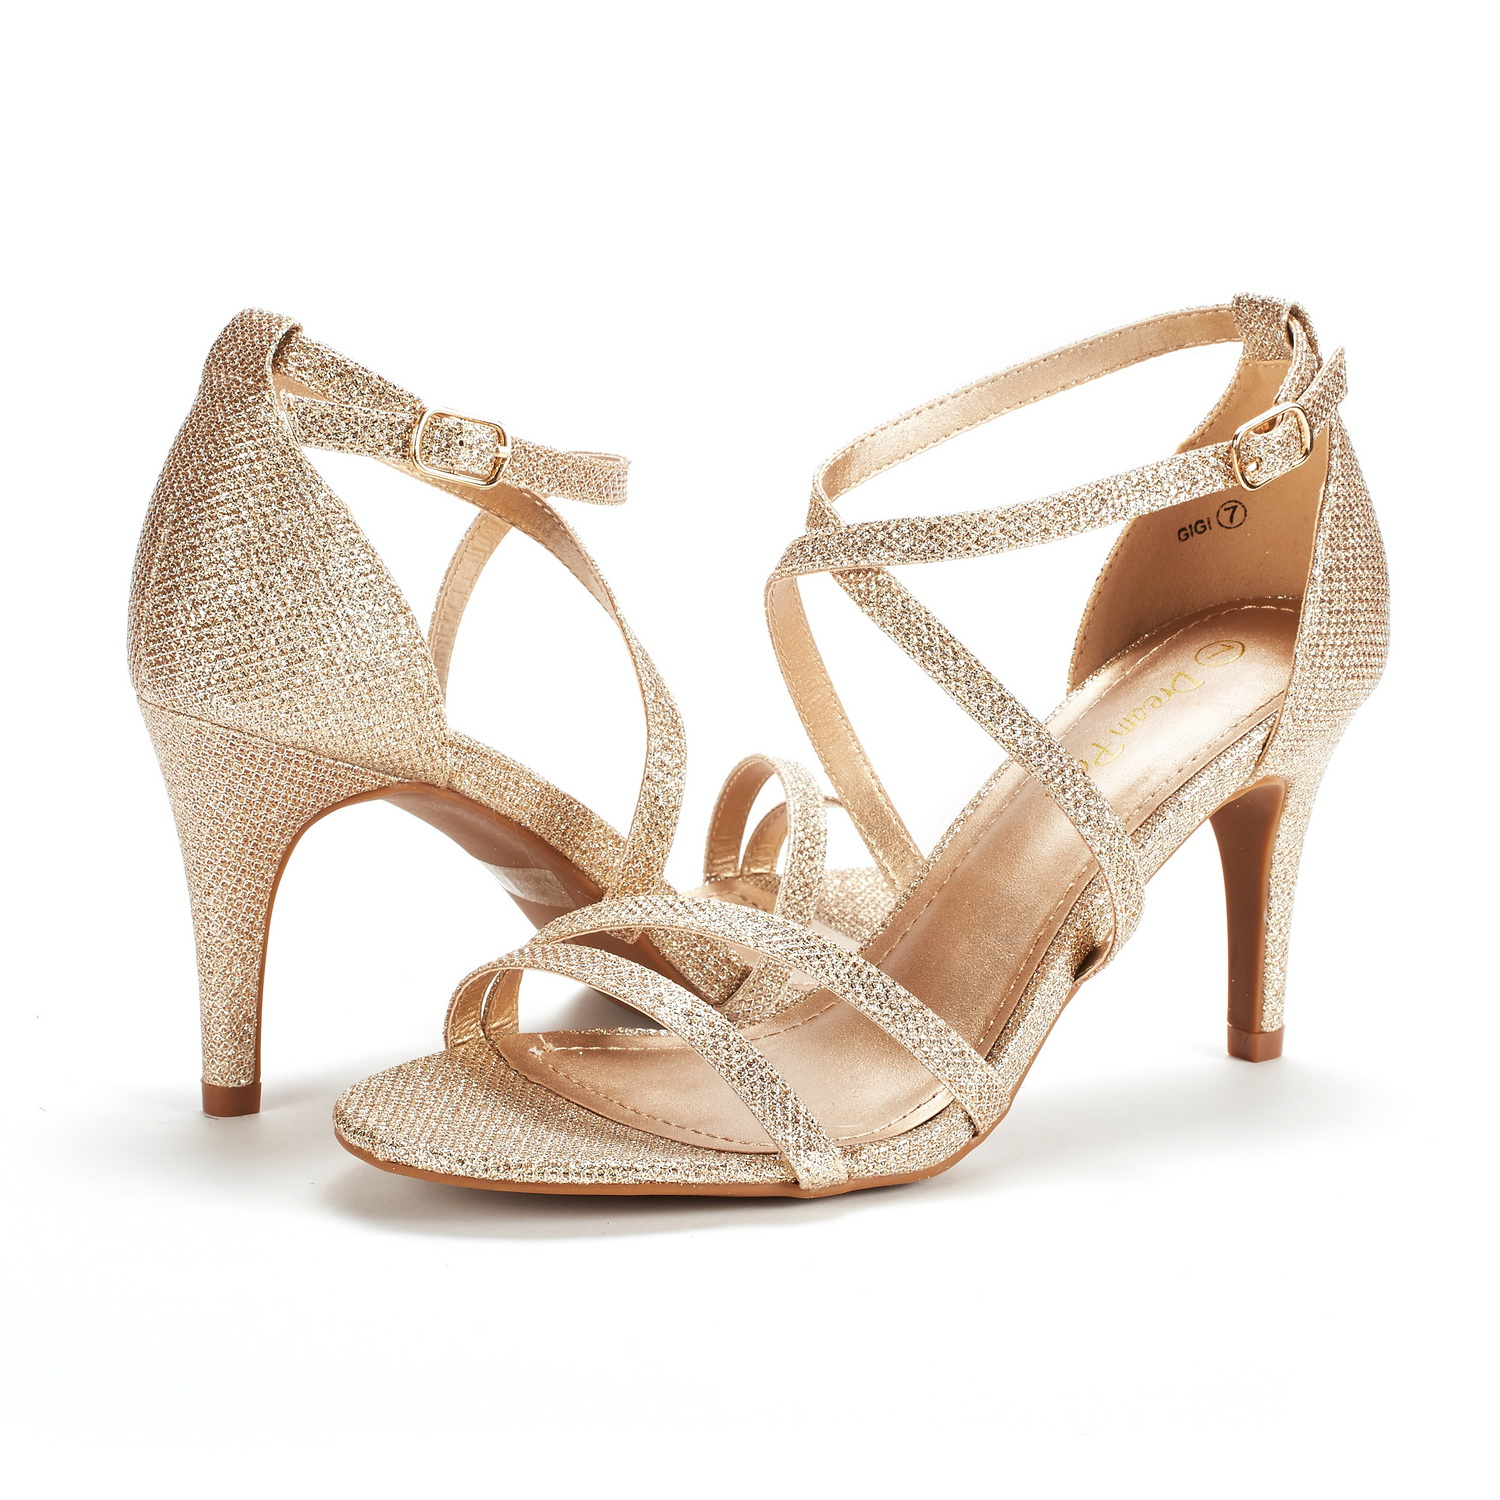 DREAM-PAIRS-Women-039-s-Ankle-Strap-High-Heel-Sandals-Dress-Shoes-Wedding-Party thumbnail 33